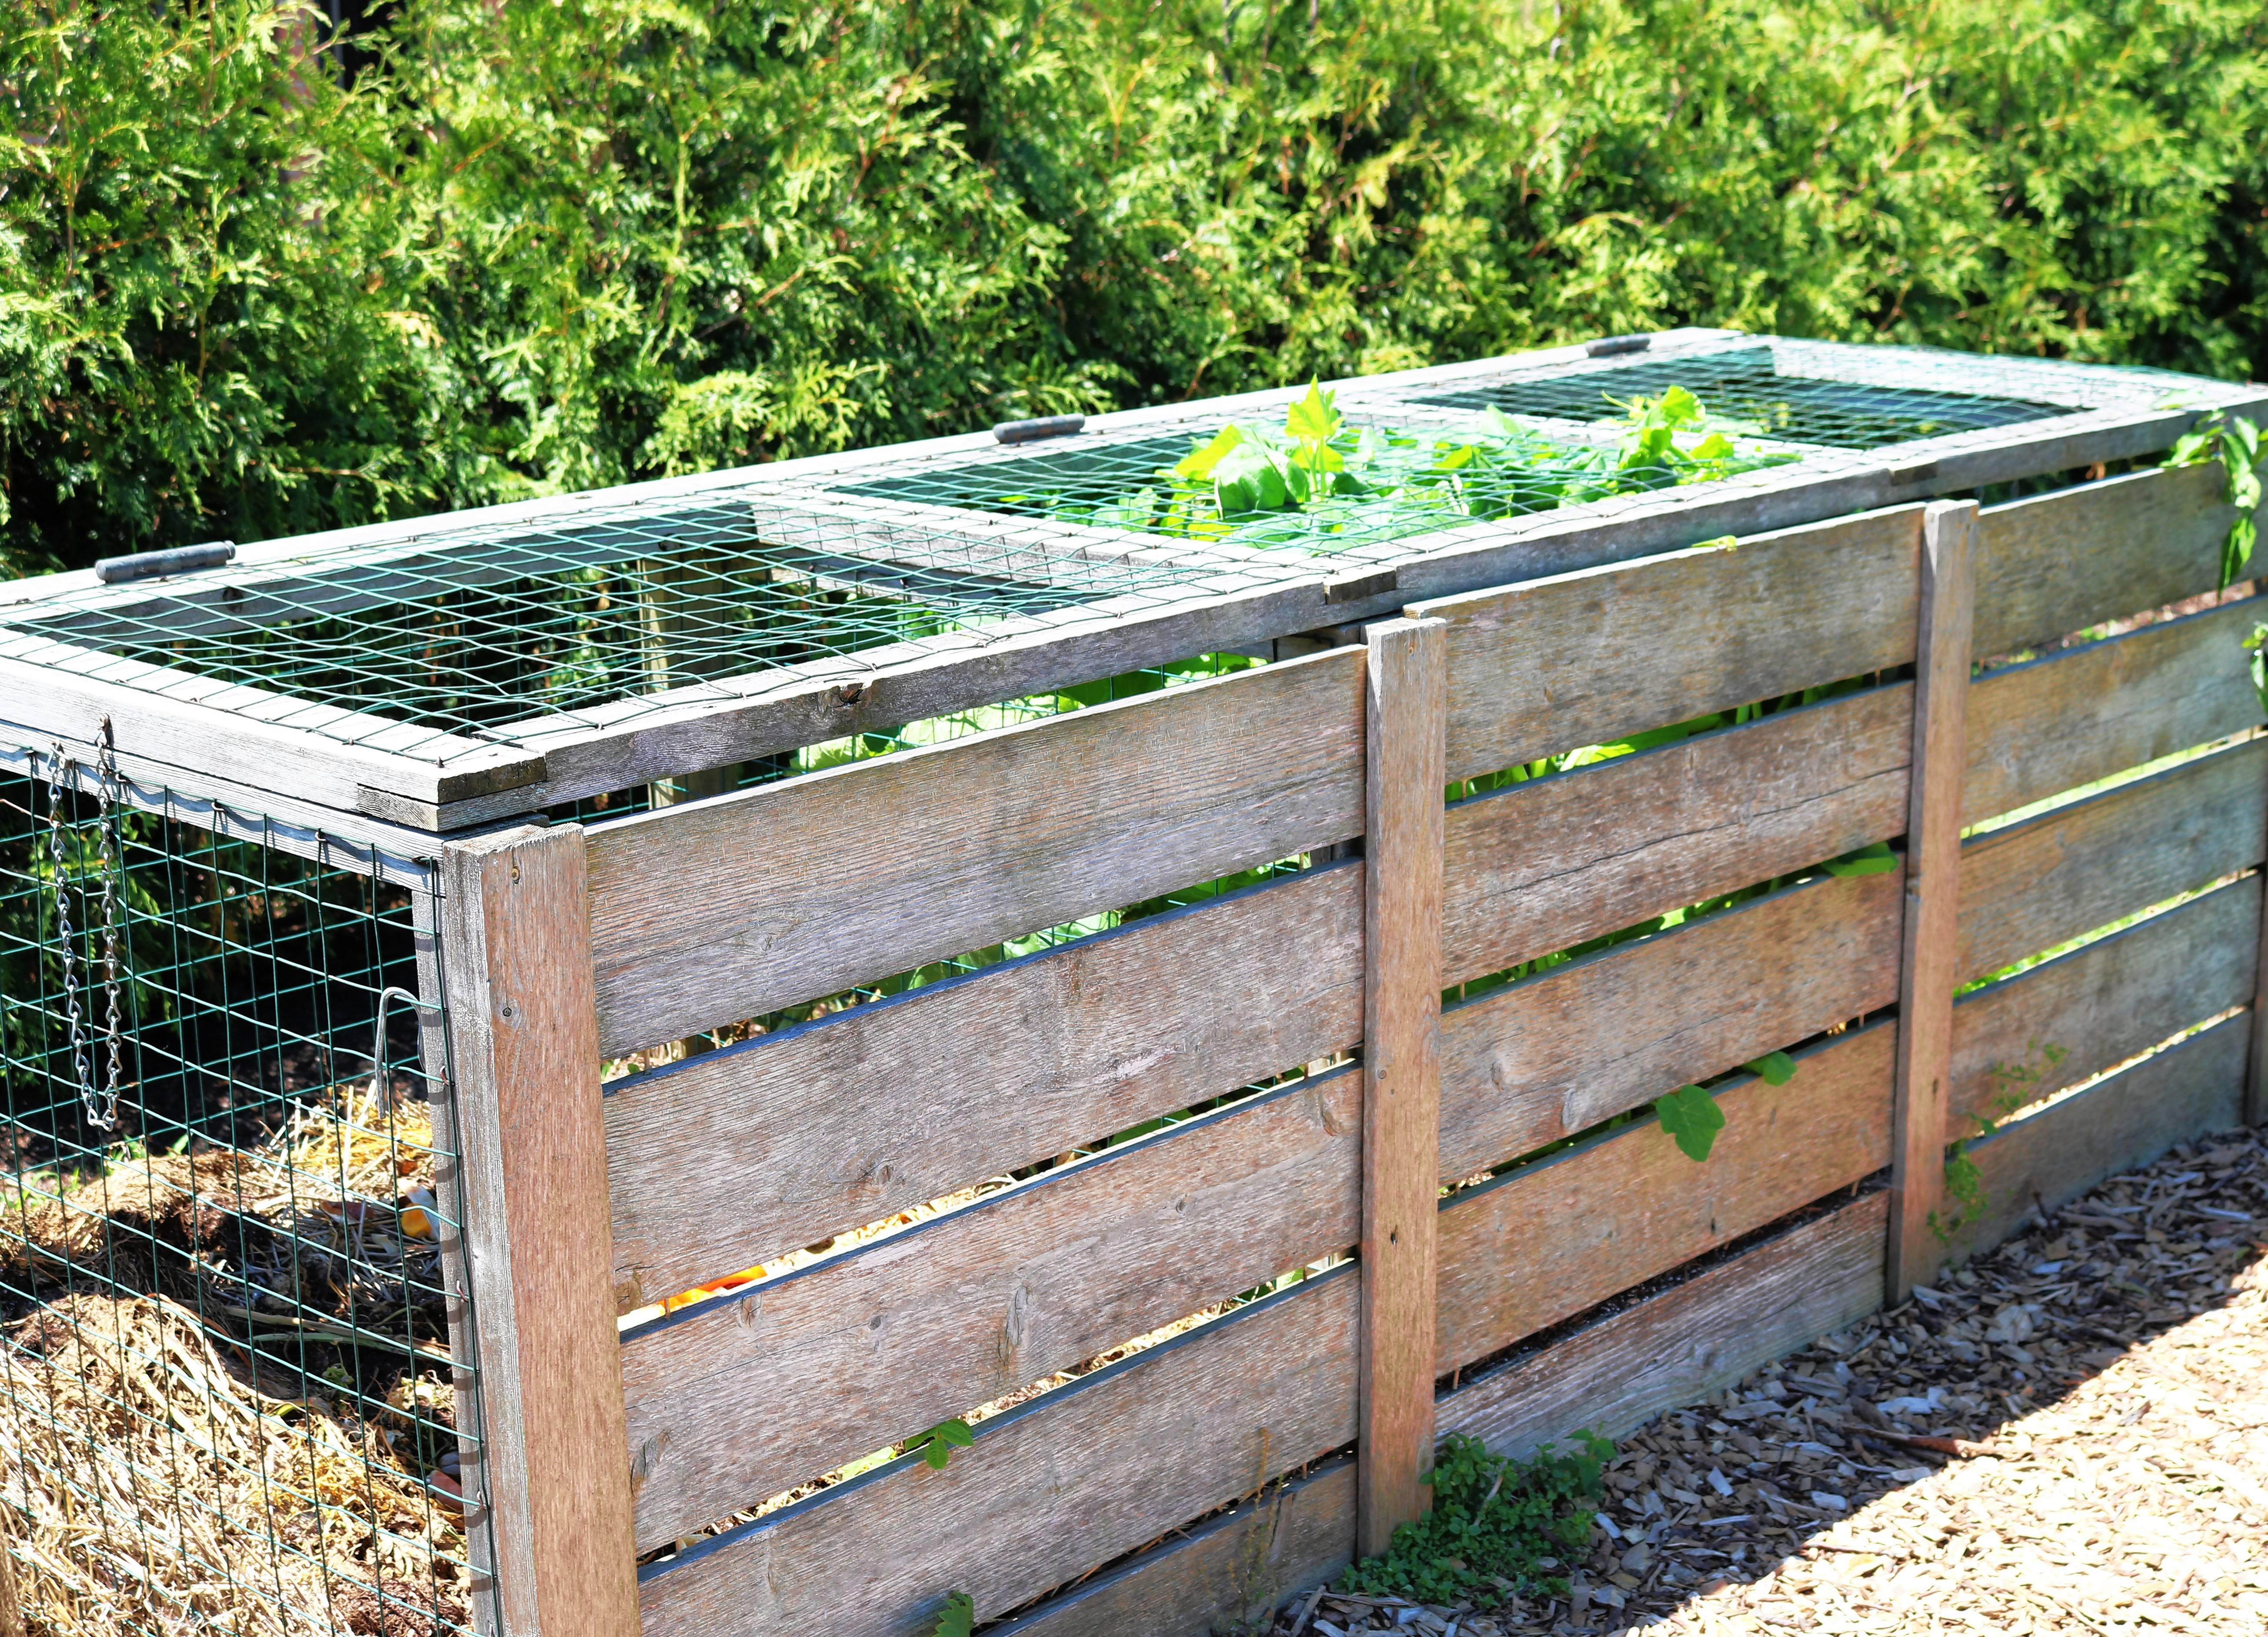 Build a compost bin or start a compost pile in an out of the way corner.